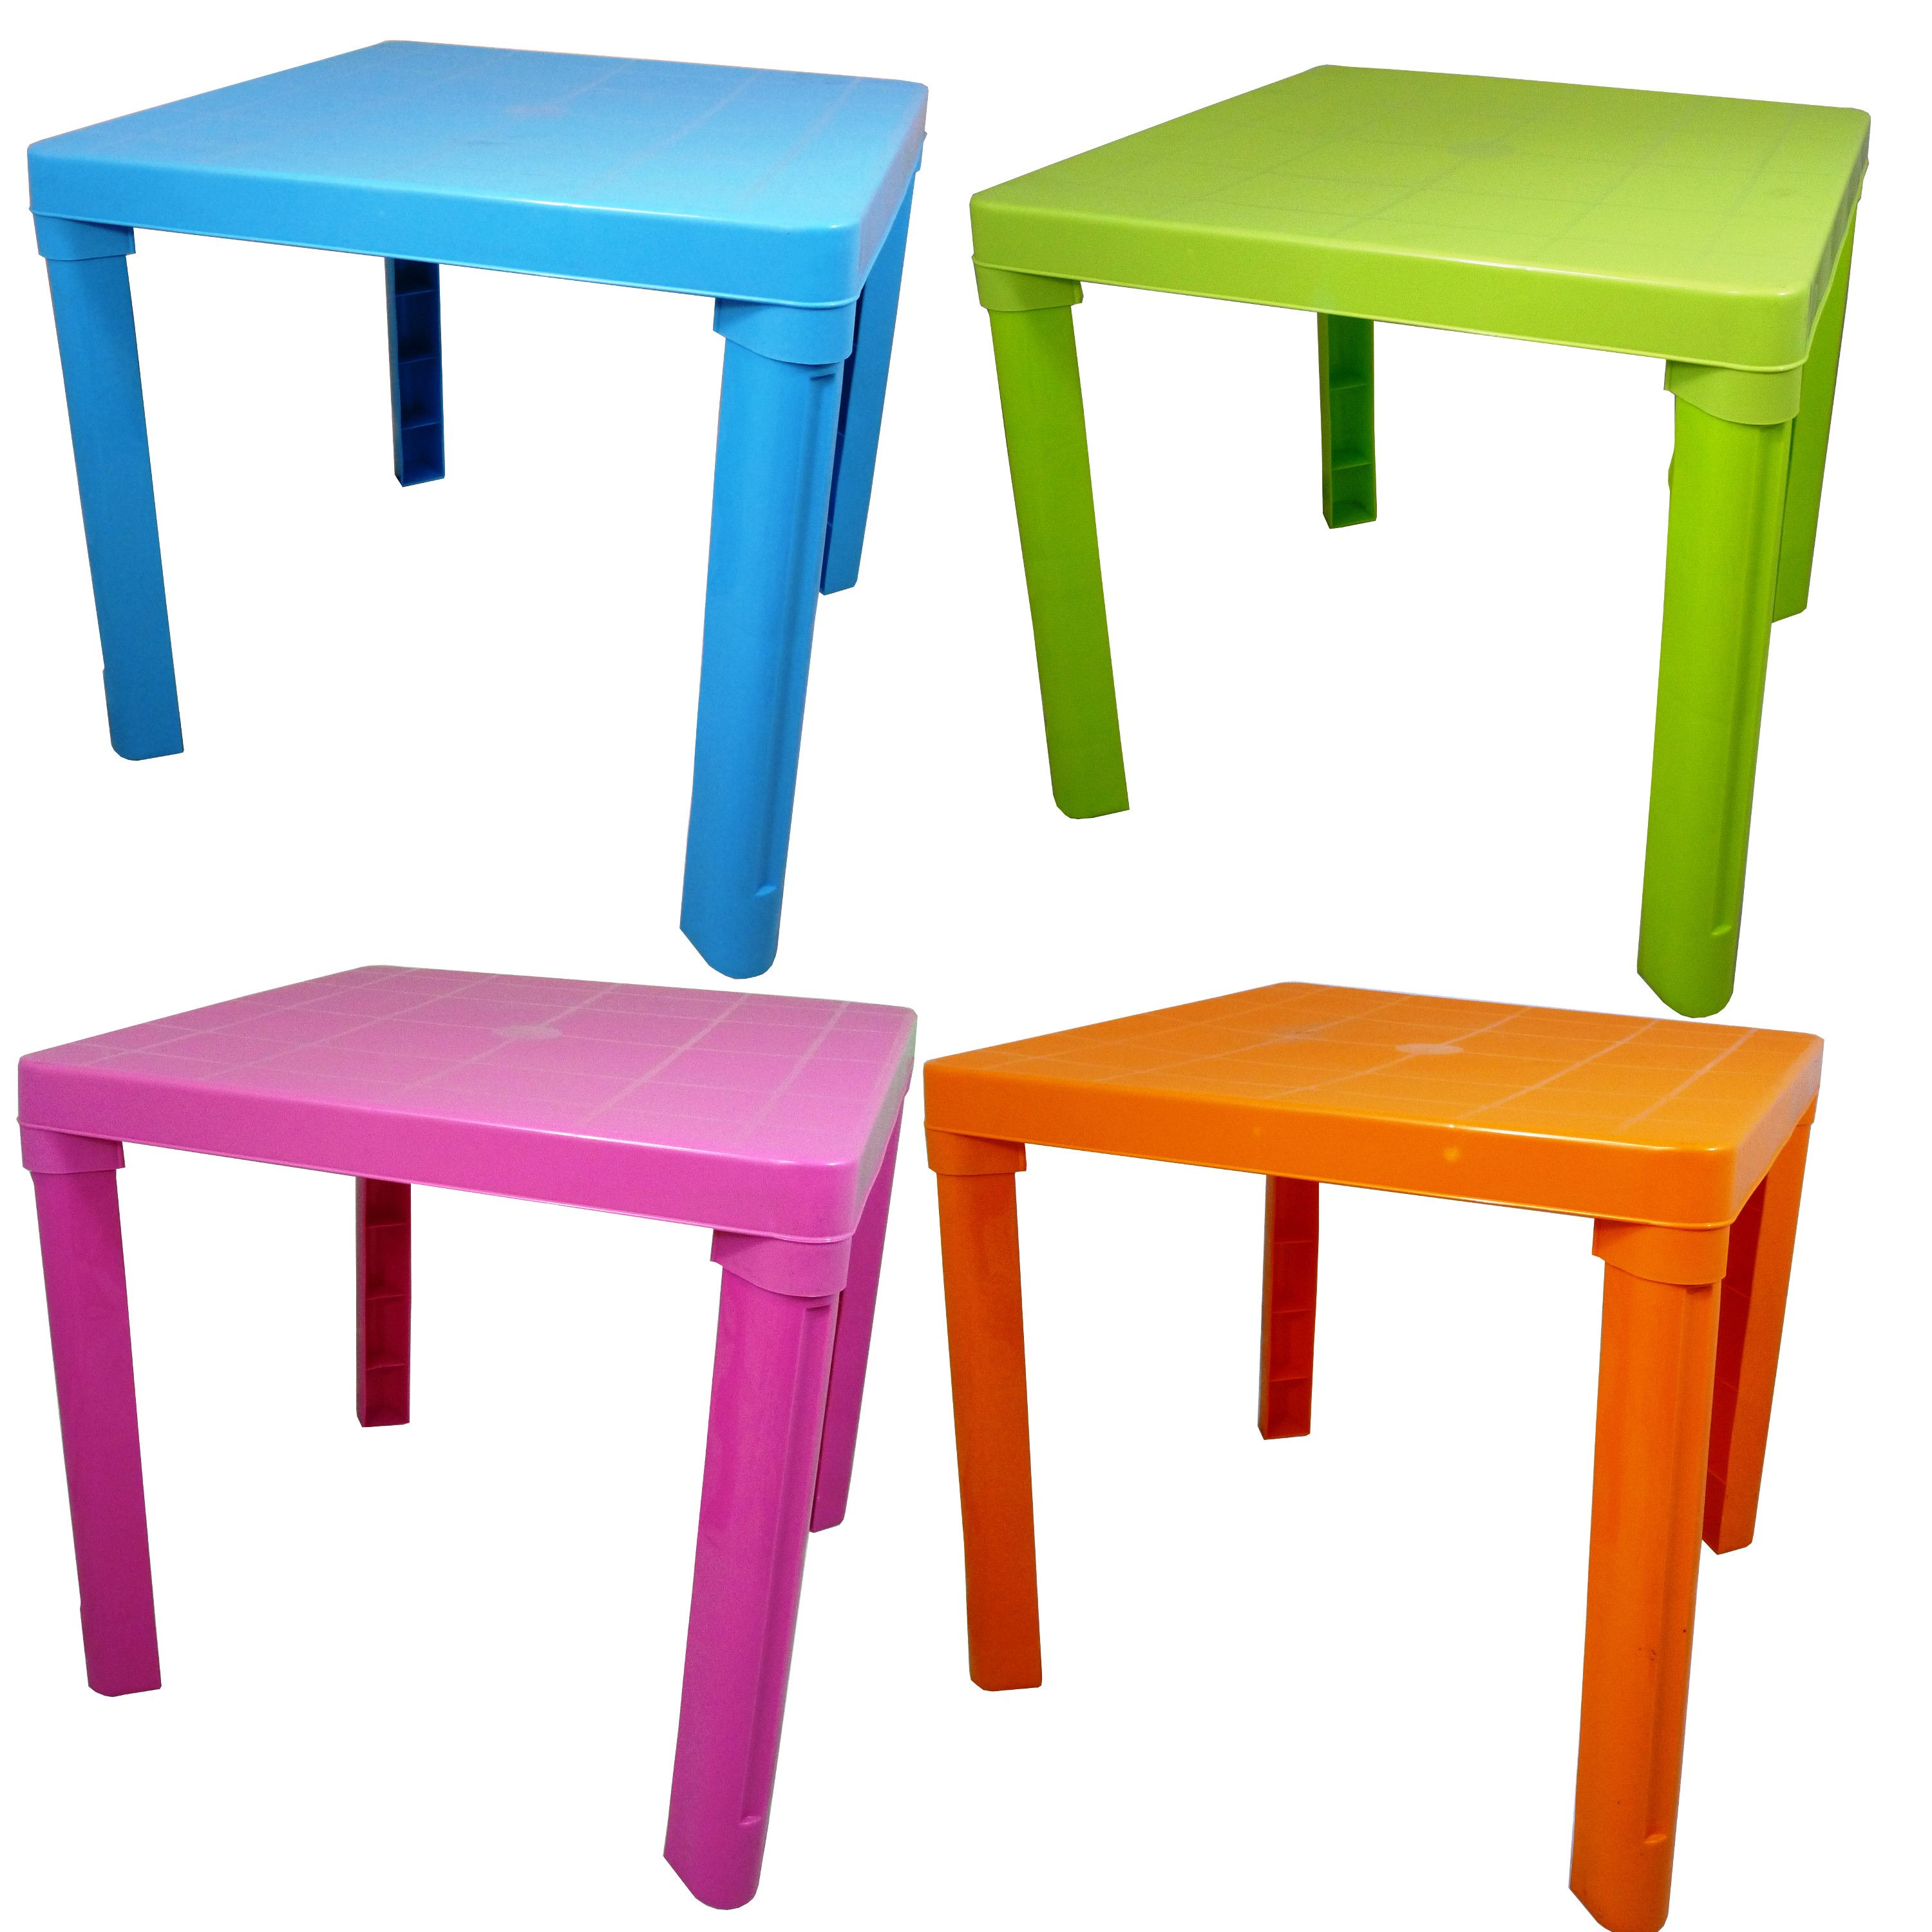 Exceptional Kids Children Plastic Table 4 Colours Home Garden Picnic